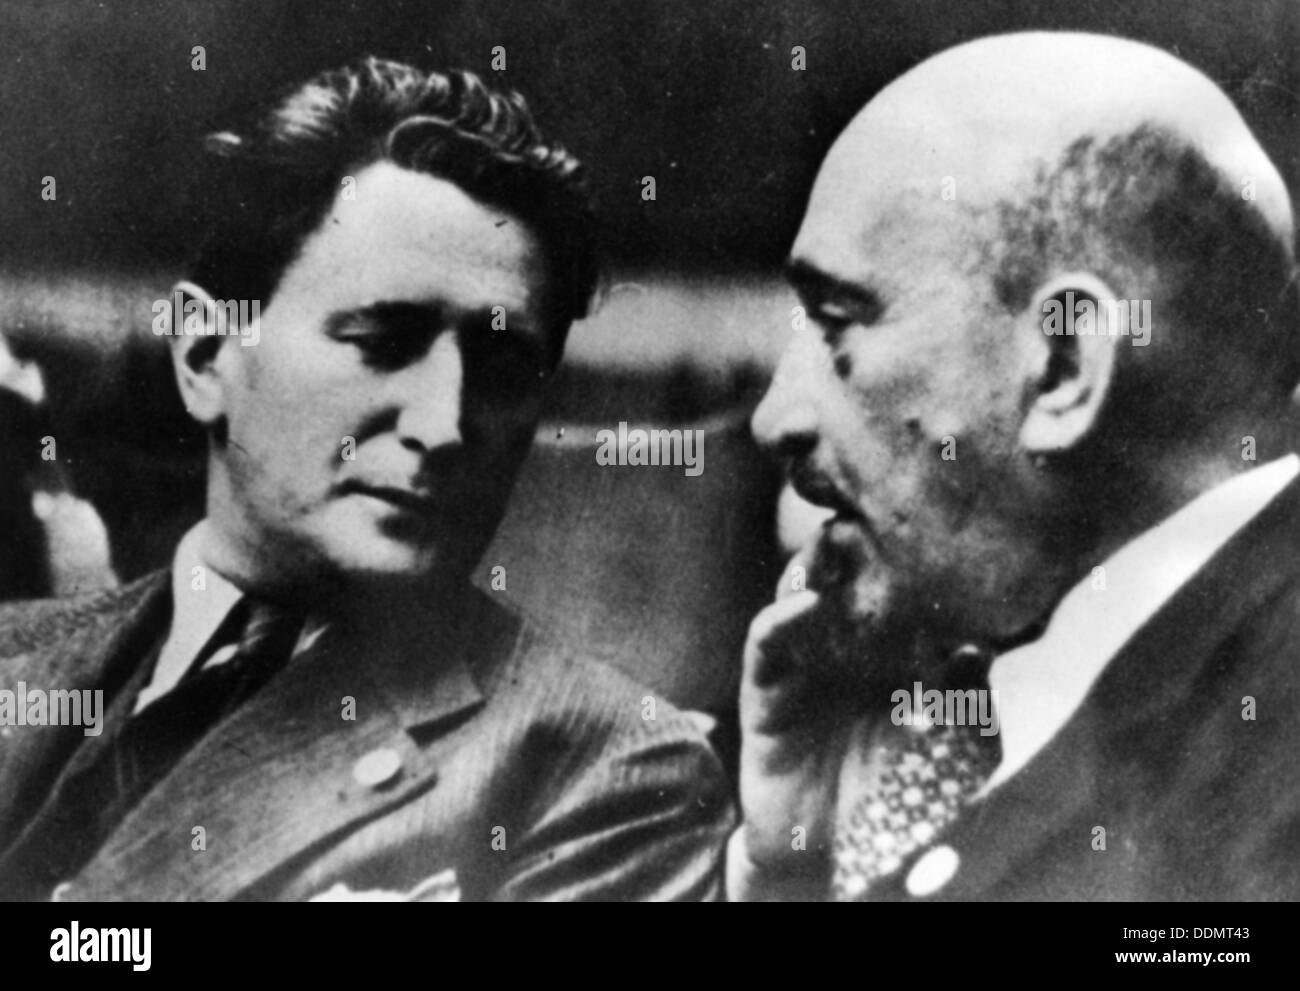 Nahum Goldmann (1894-1982), and Chaim Weizmann (1874-1952), Zionist and World Jewish Leaders. Stock Photo